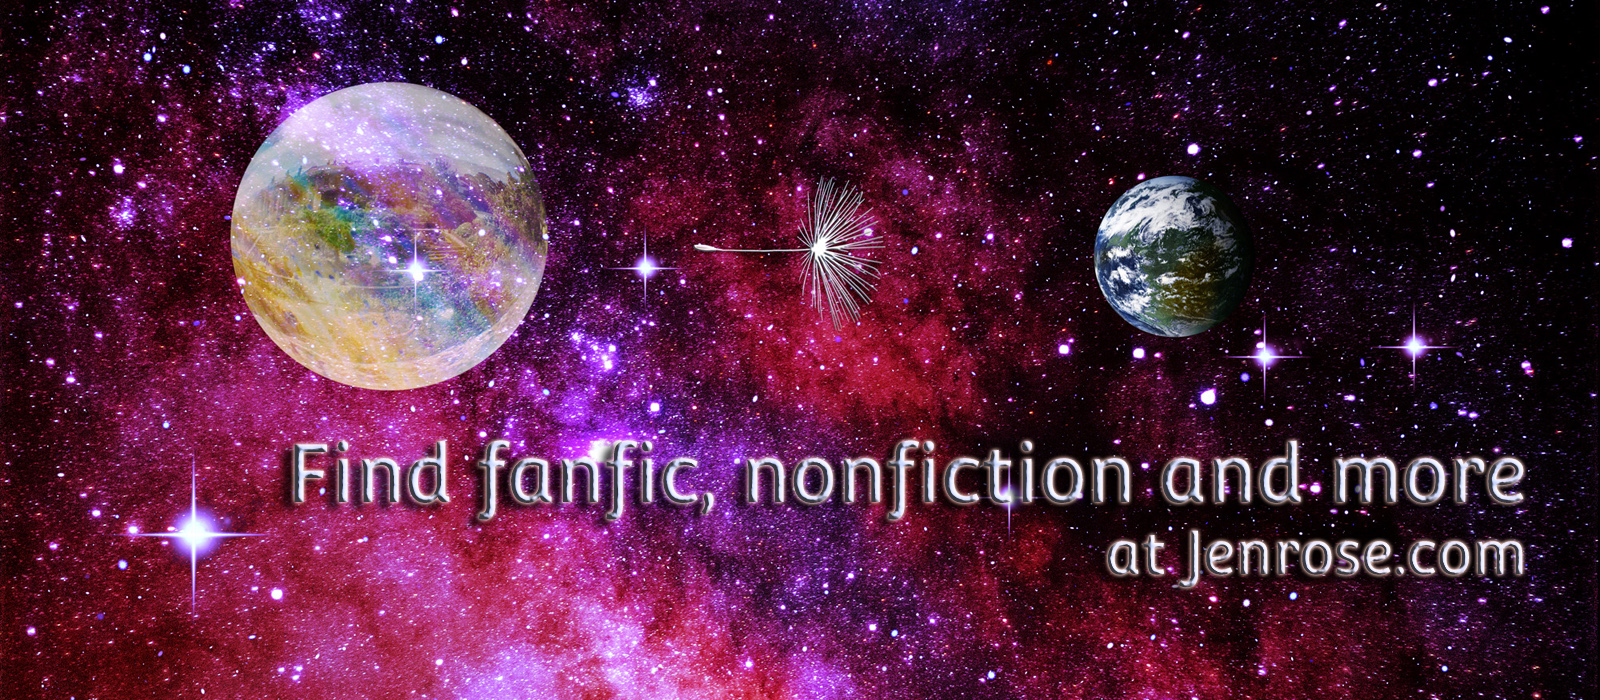 """On a bright nebular background, we see a city in a bubble, a metallic dandelon probe, and the planet Lon. The words """"Find Fanfic, nonfiction,"""